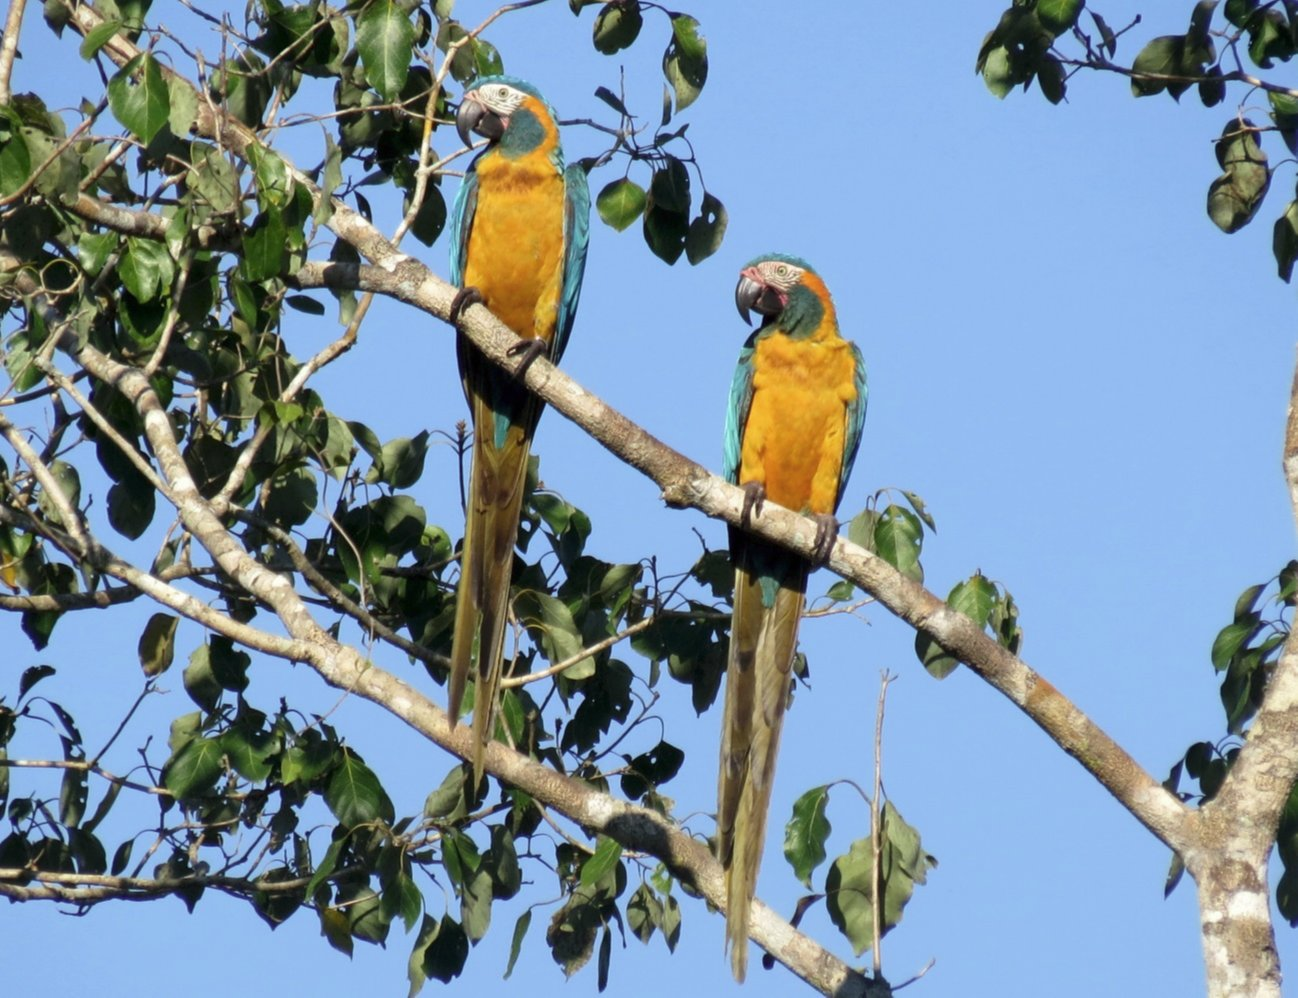 Blue-throated macaw pair